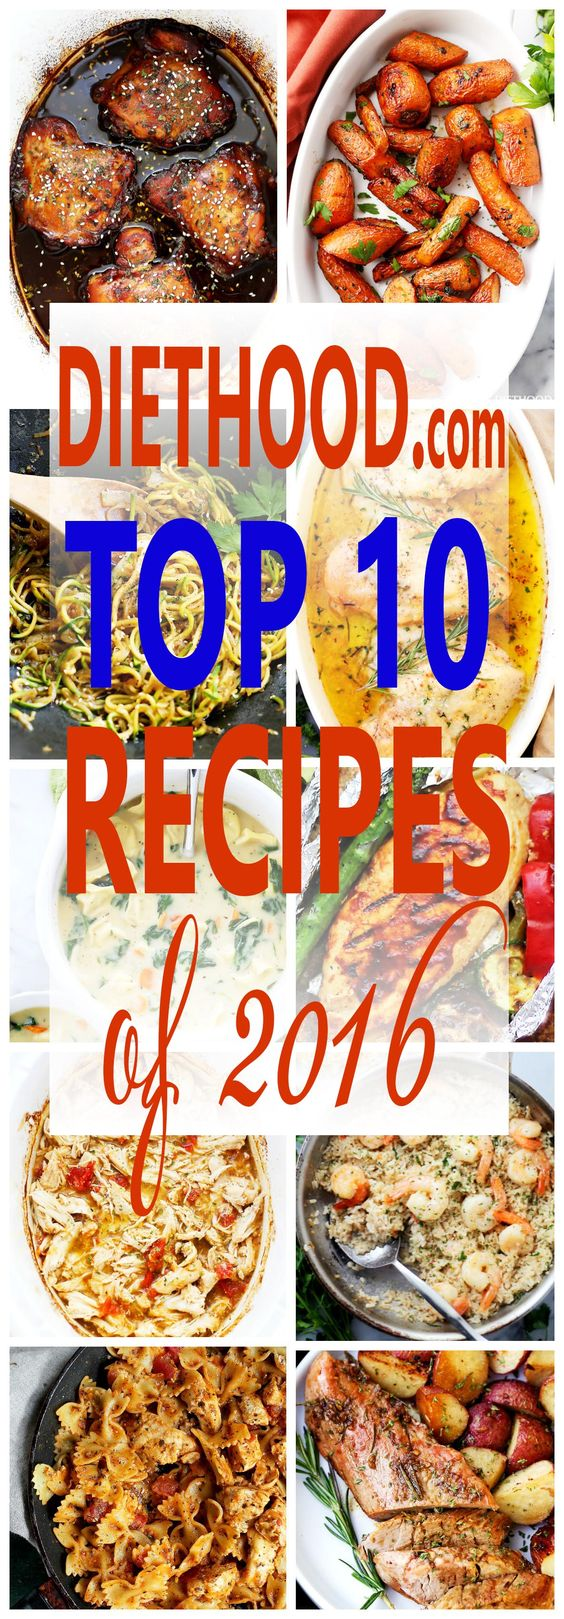 Diethood: TOP 10 RECIPES OF 2016!